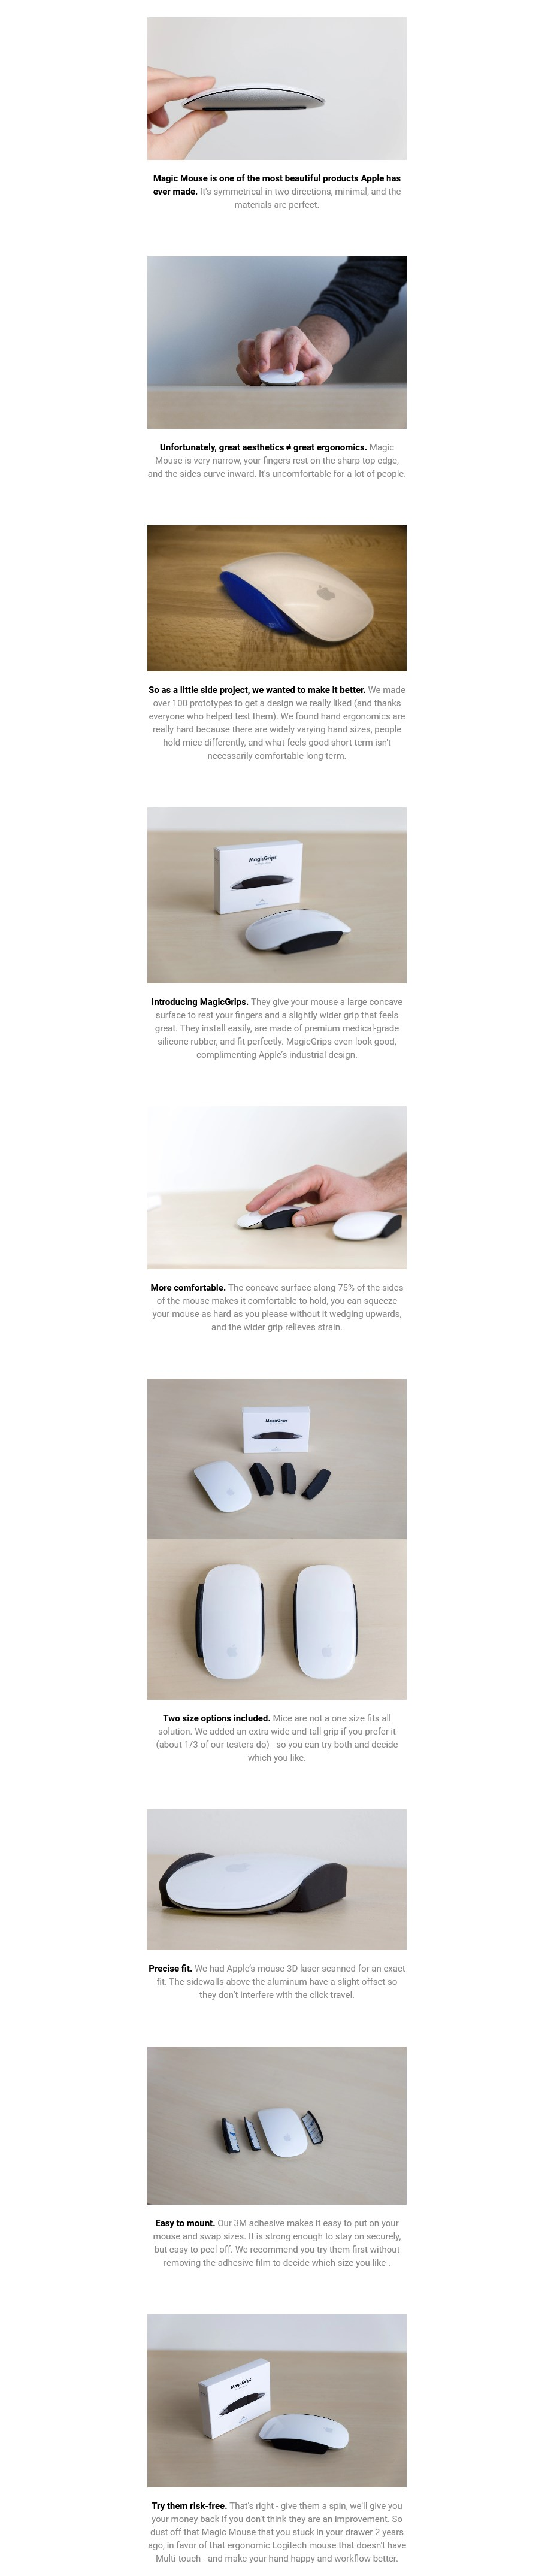 Elevation Lab Magic Grips For Magic Mouse - Overview 1